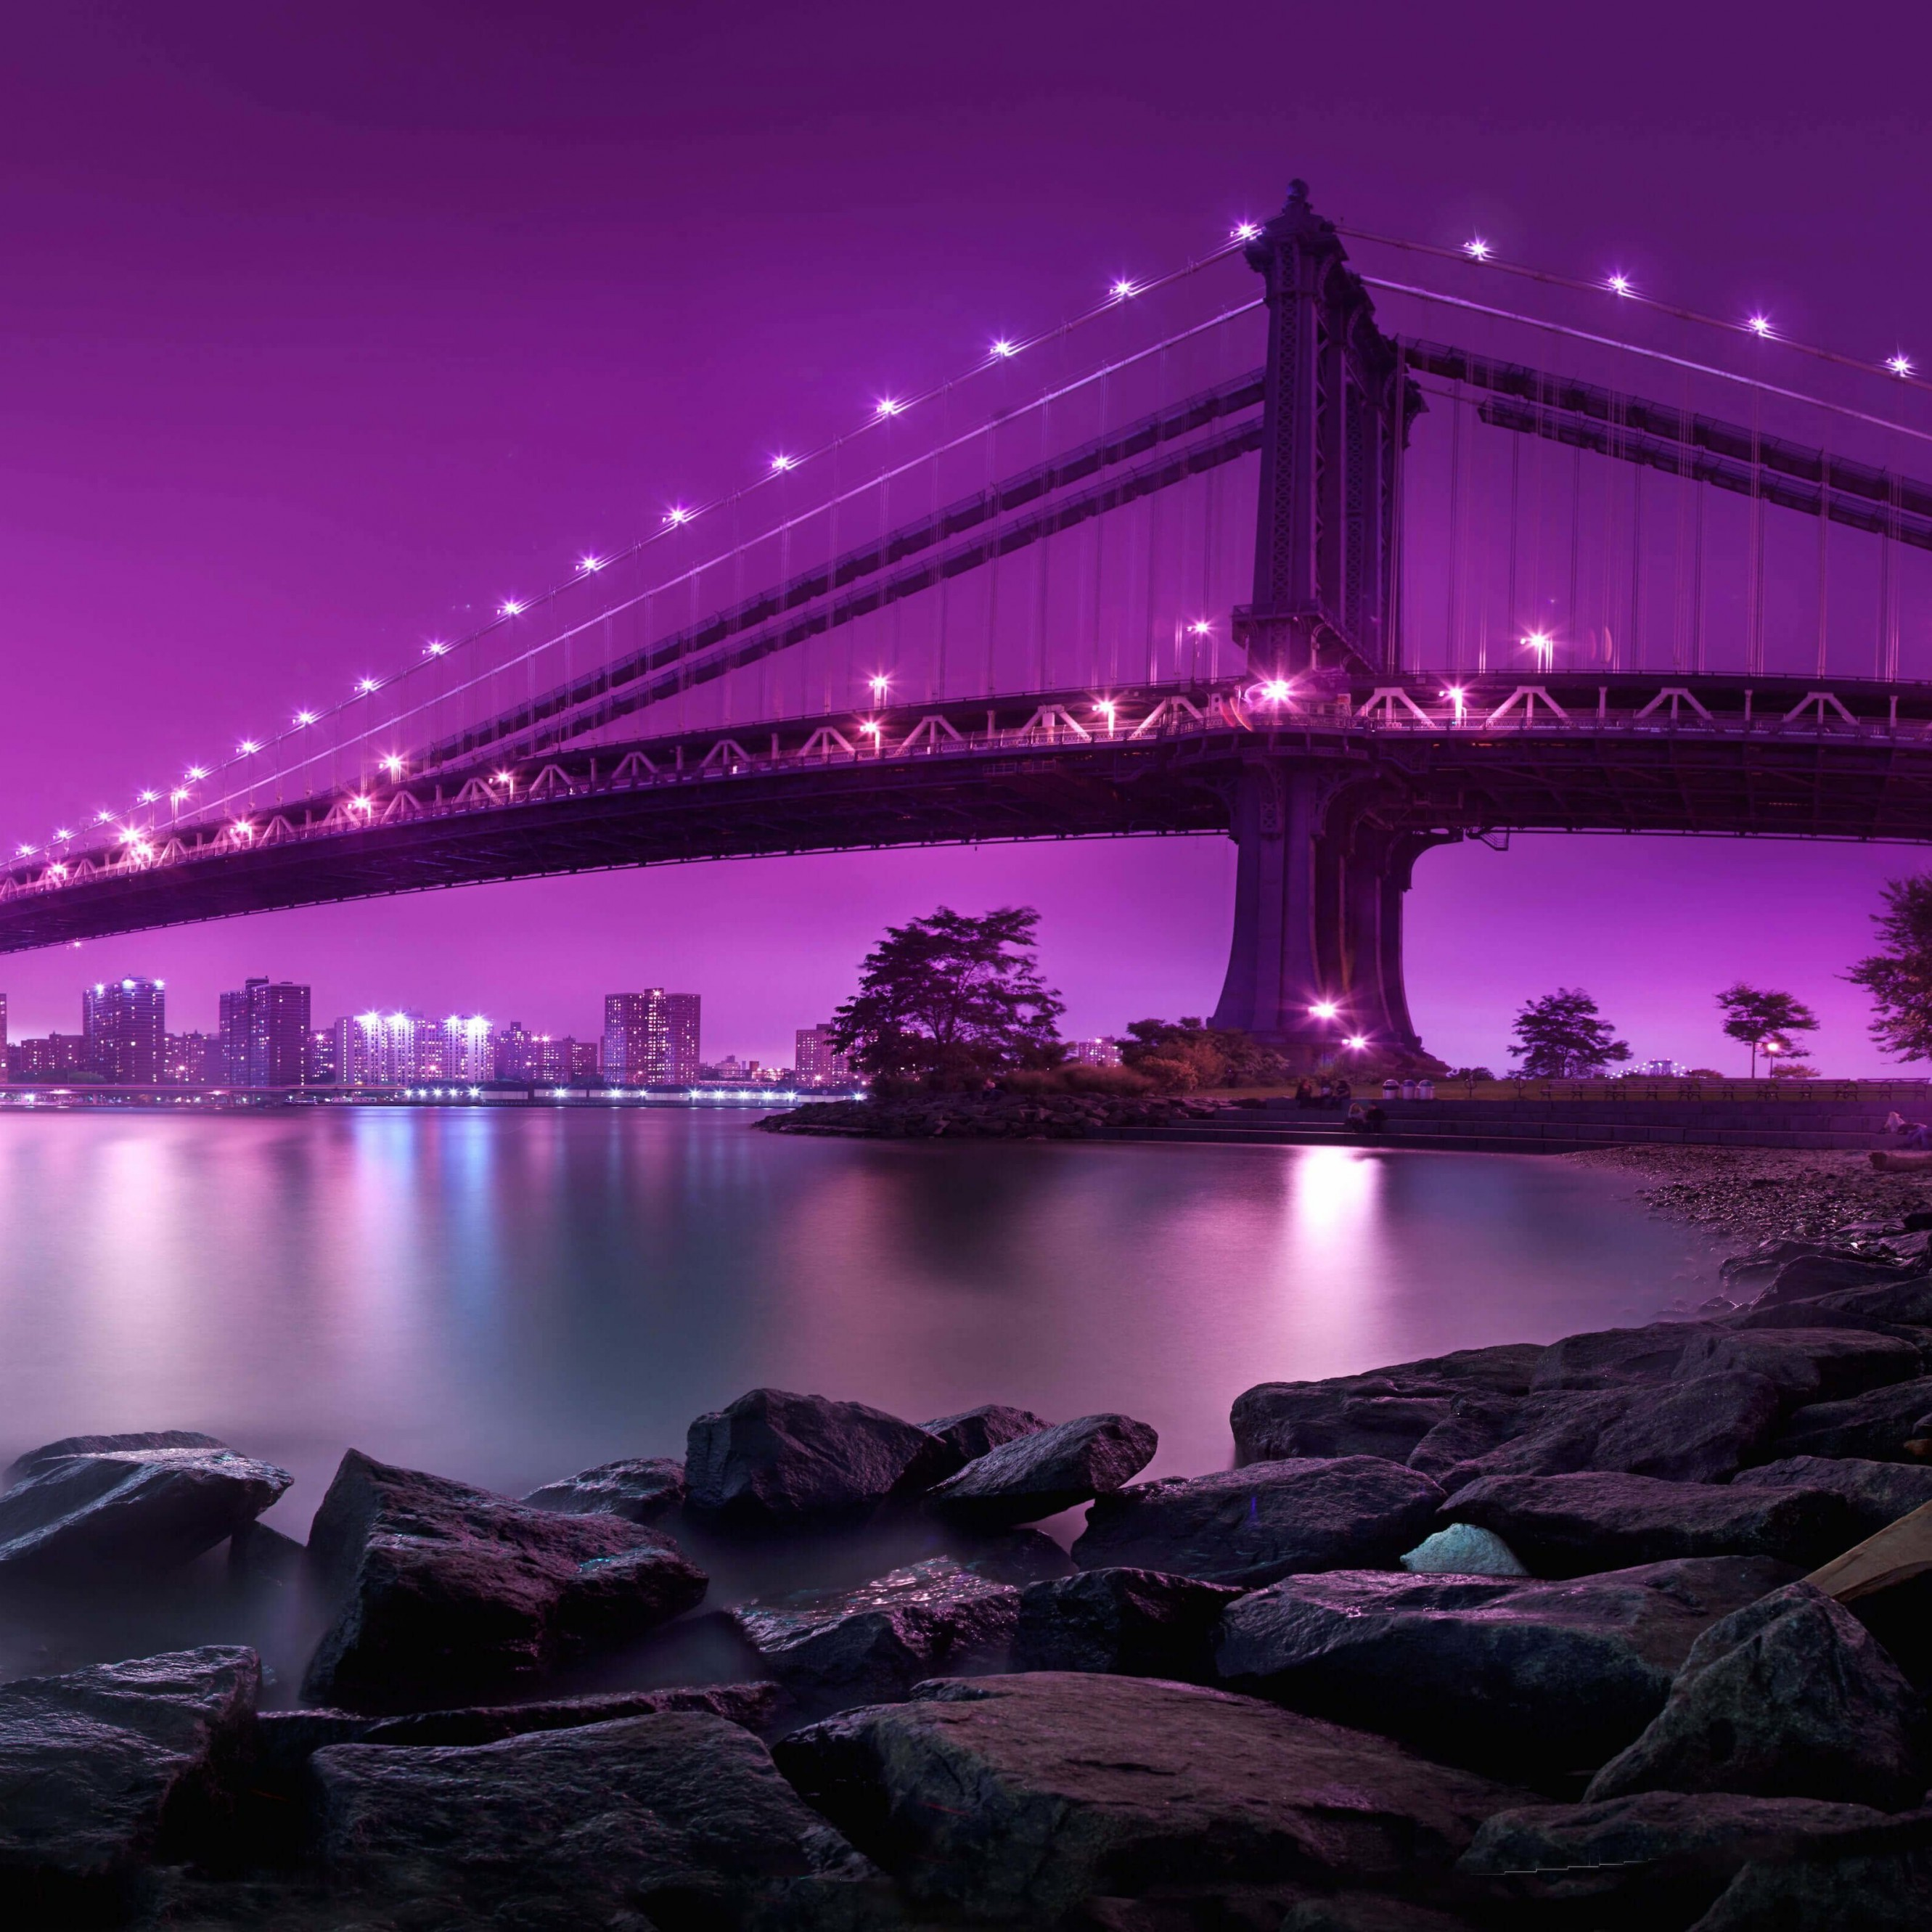 Brooklyn Bridge by night Wallpaper for Apple iPhone 6 Plus